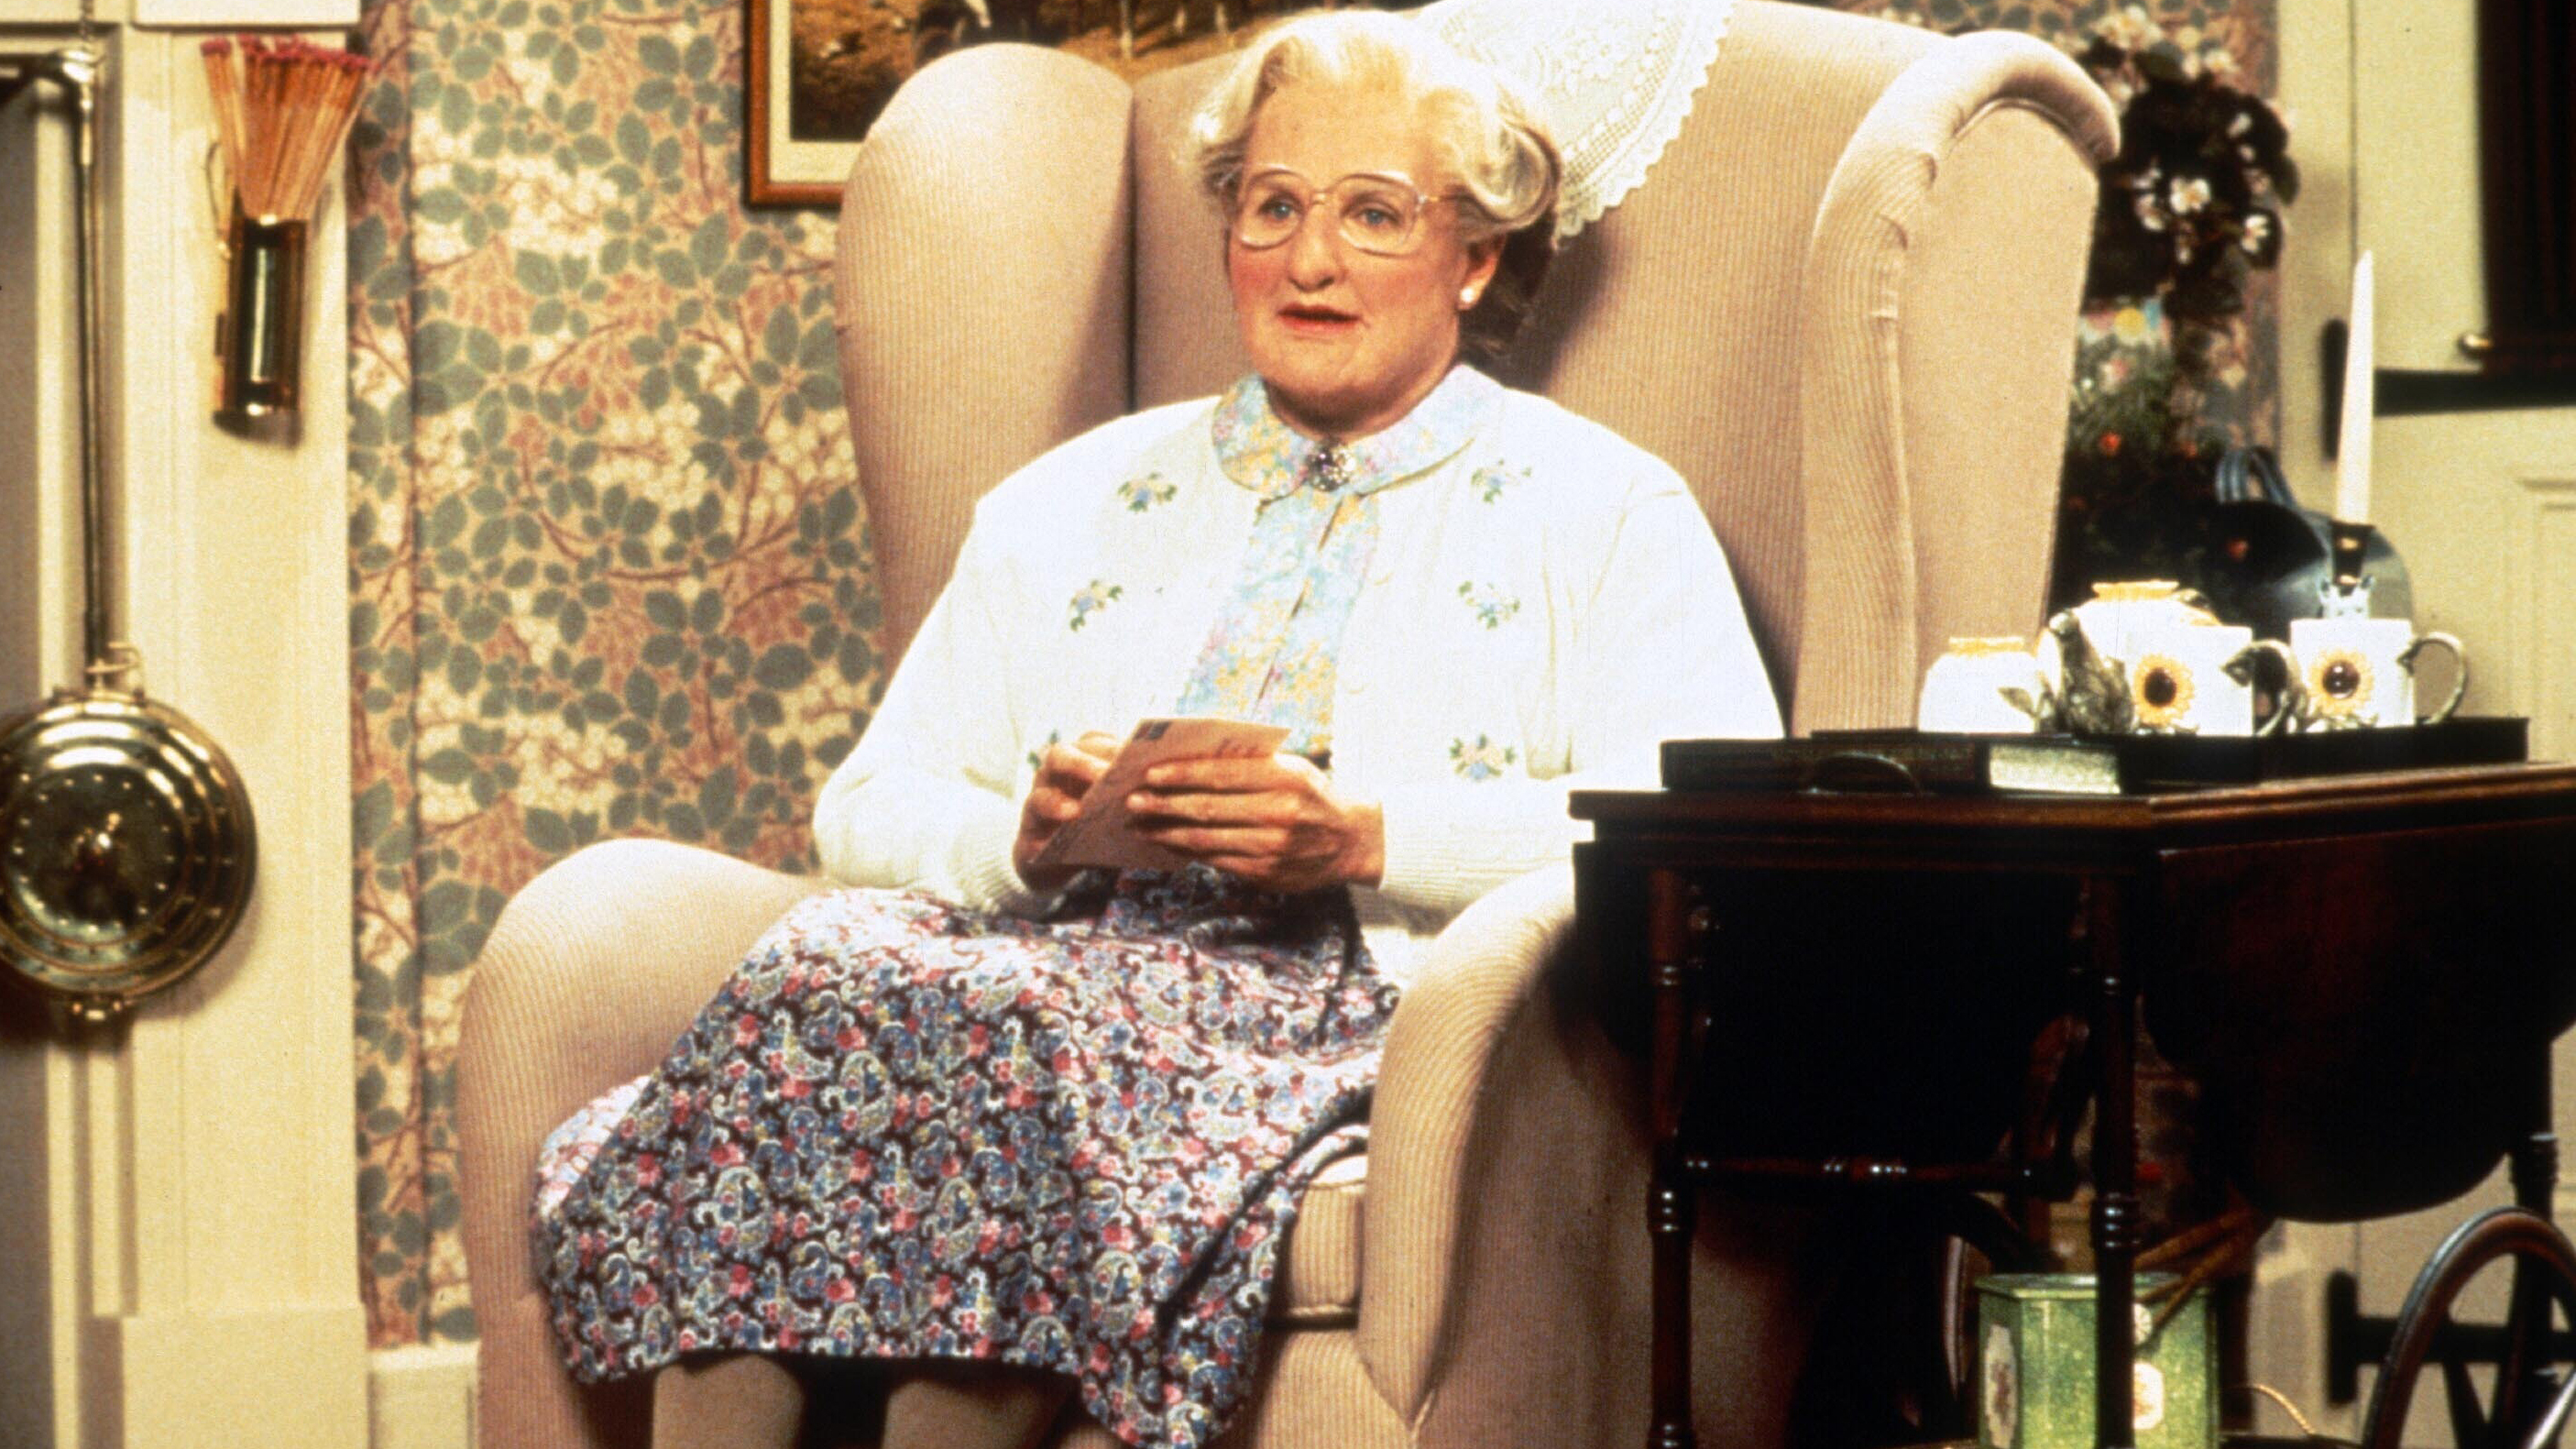 HQ Mrs. Doubtfire Wallpapers | File 2946.86Kb